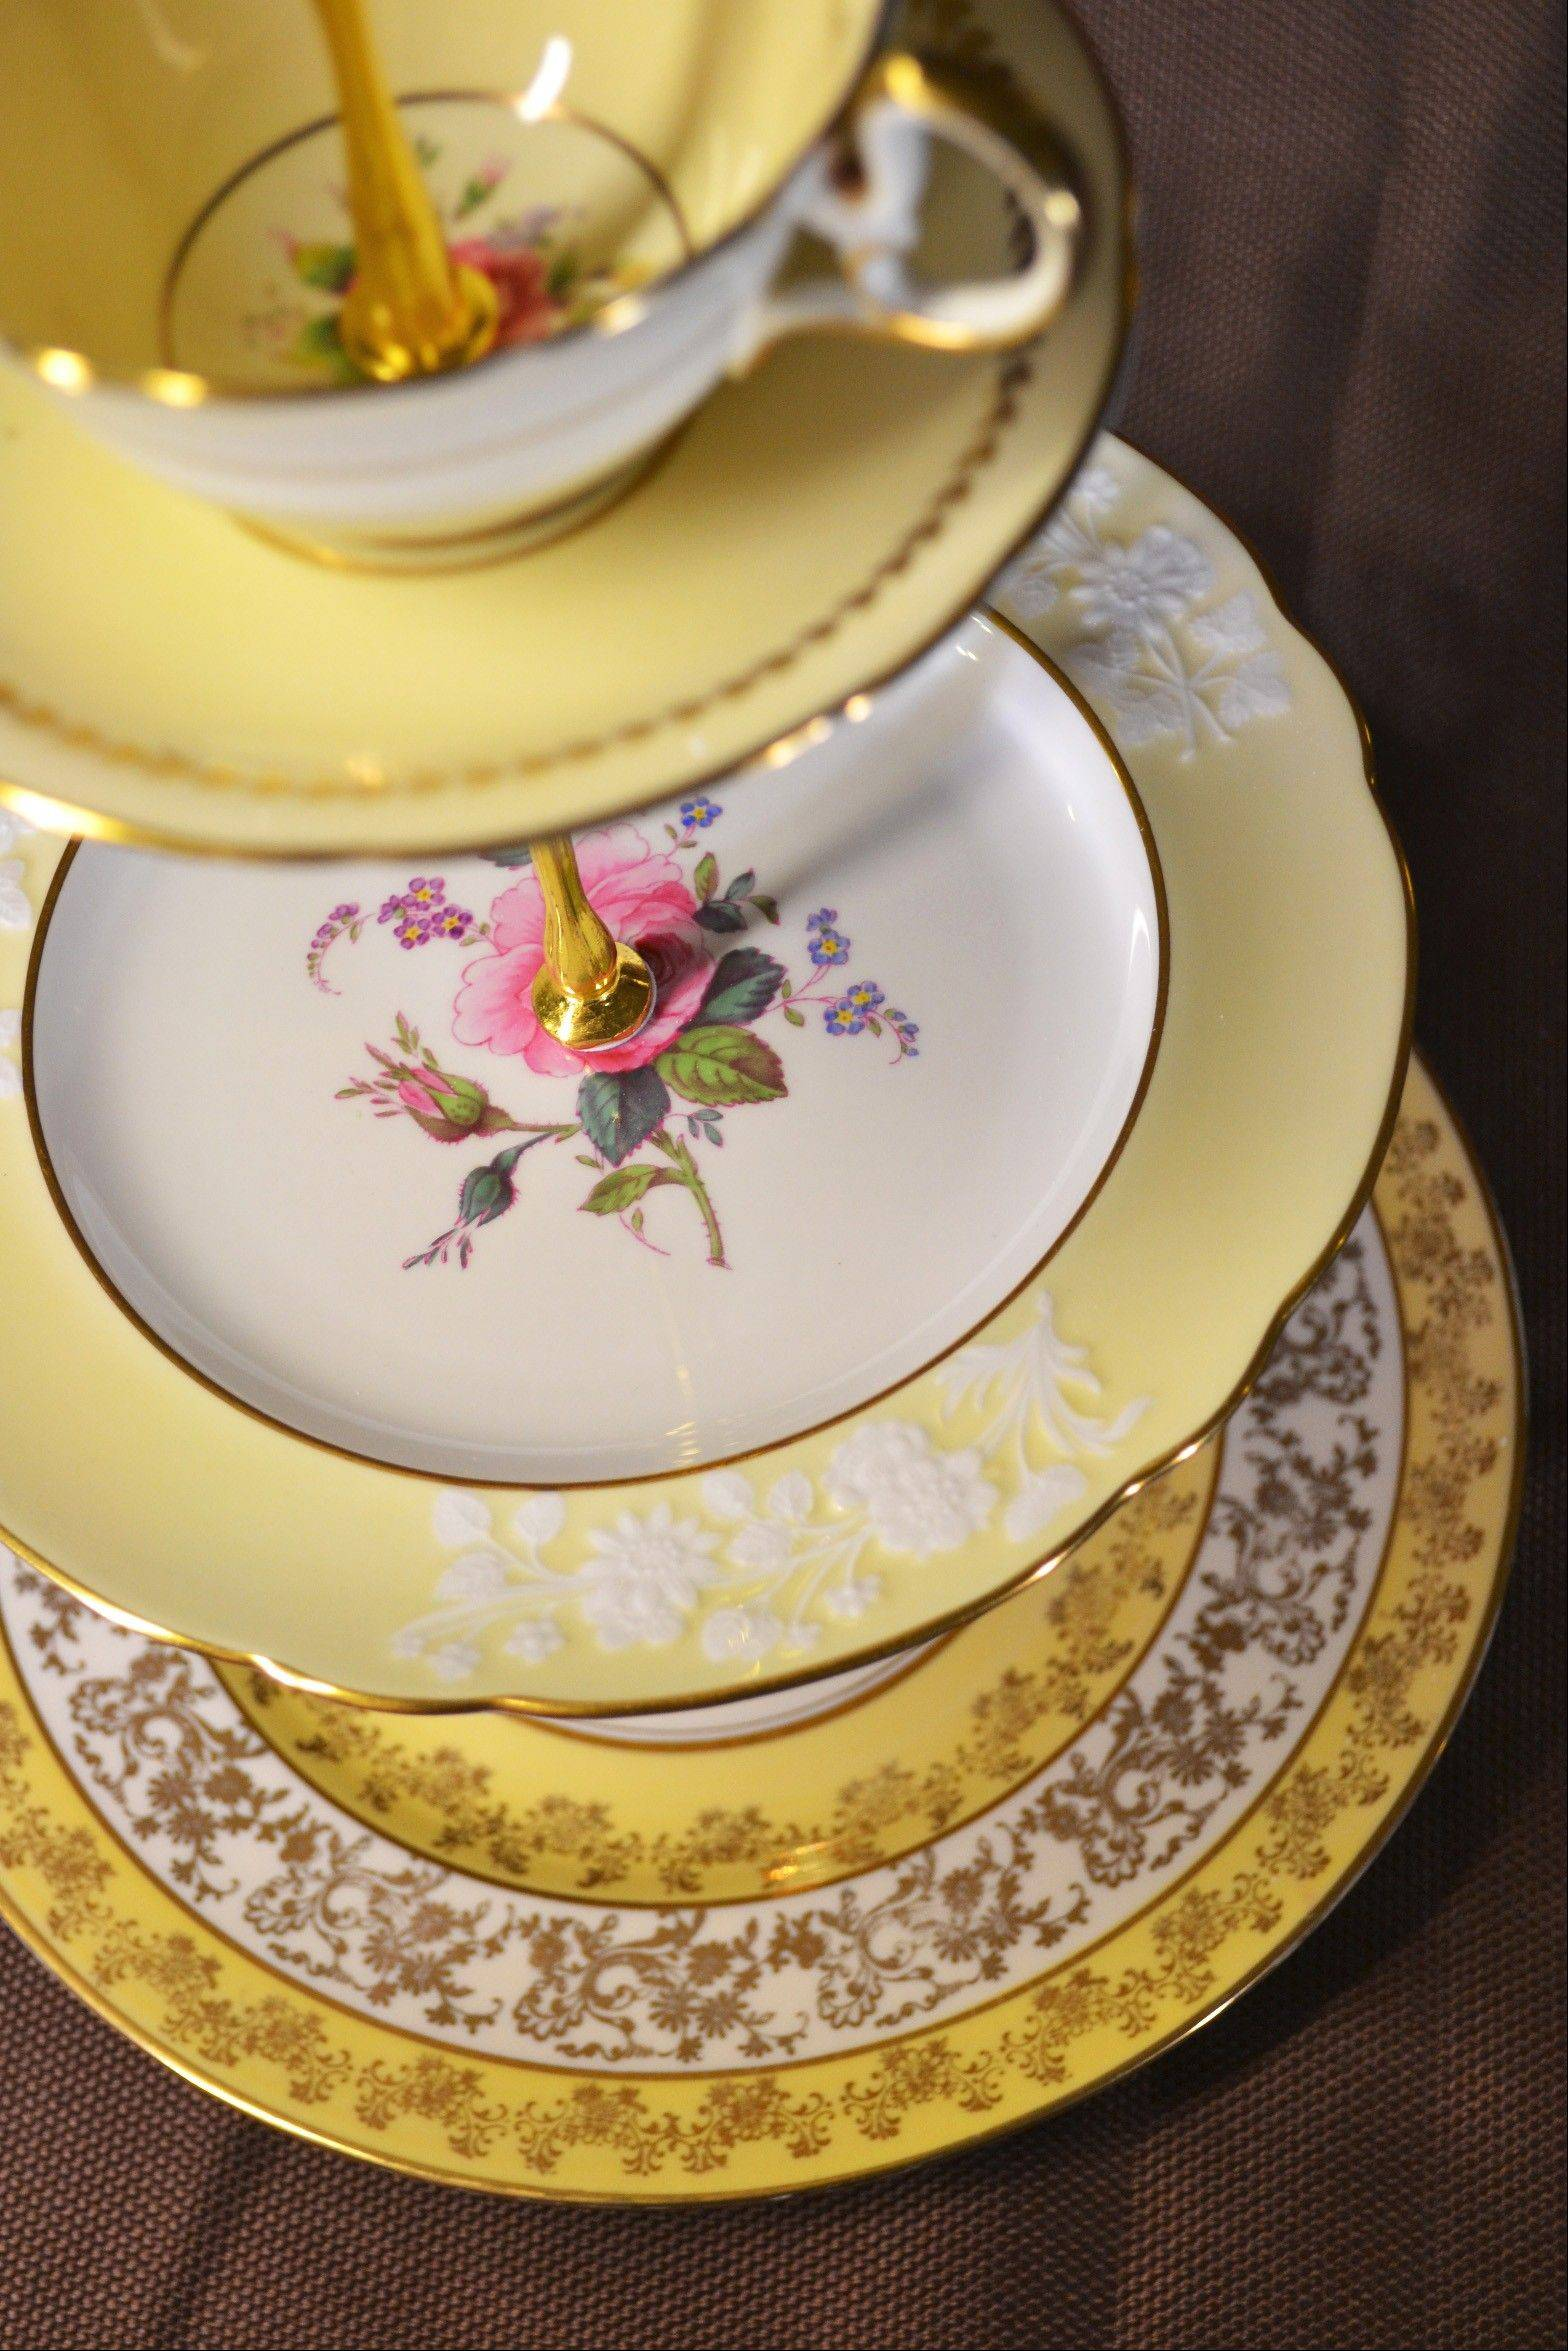 Tea Times Creations shows the final product of an upcycled-vintage-china project.